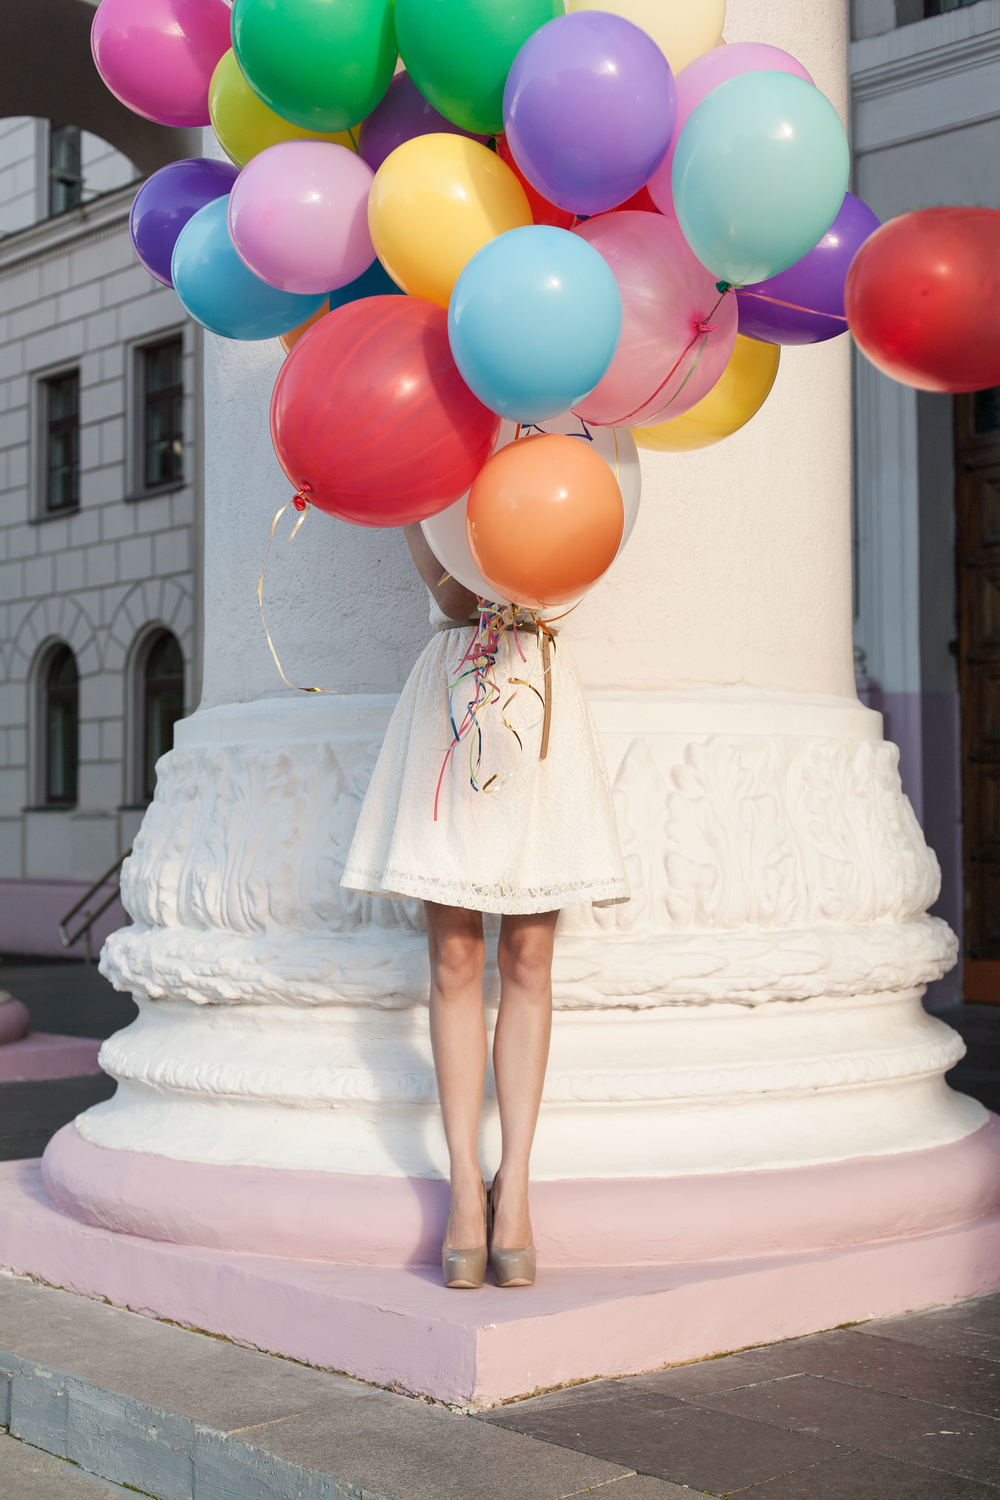 Balloon girl.jpg